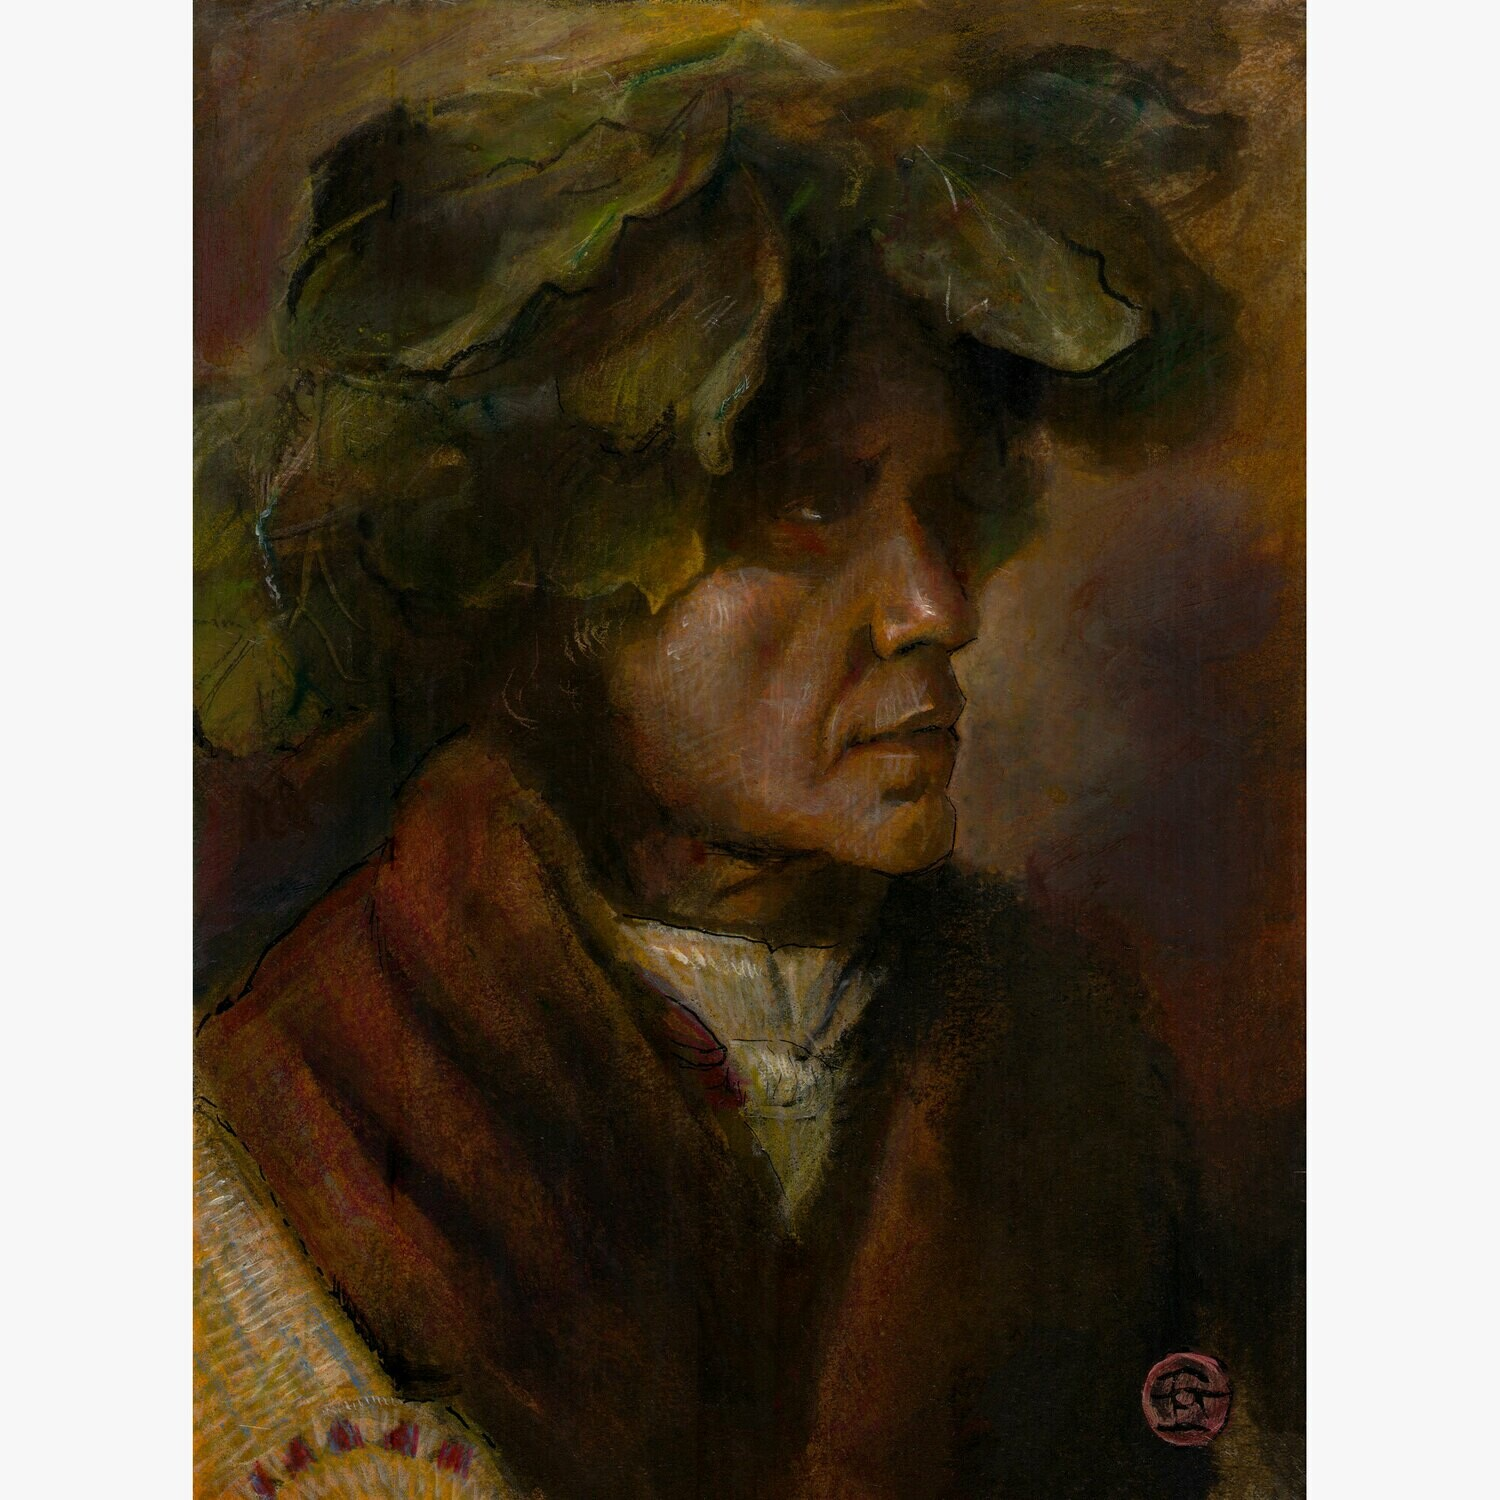 Untitled (Study after Edward S. Curtis) Original Mixed-Media Painting on Paper